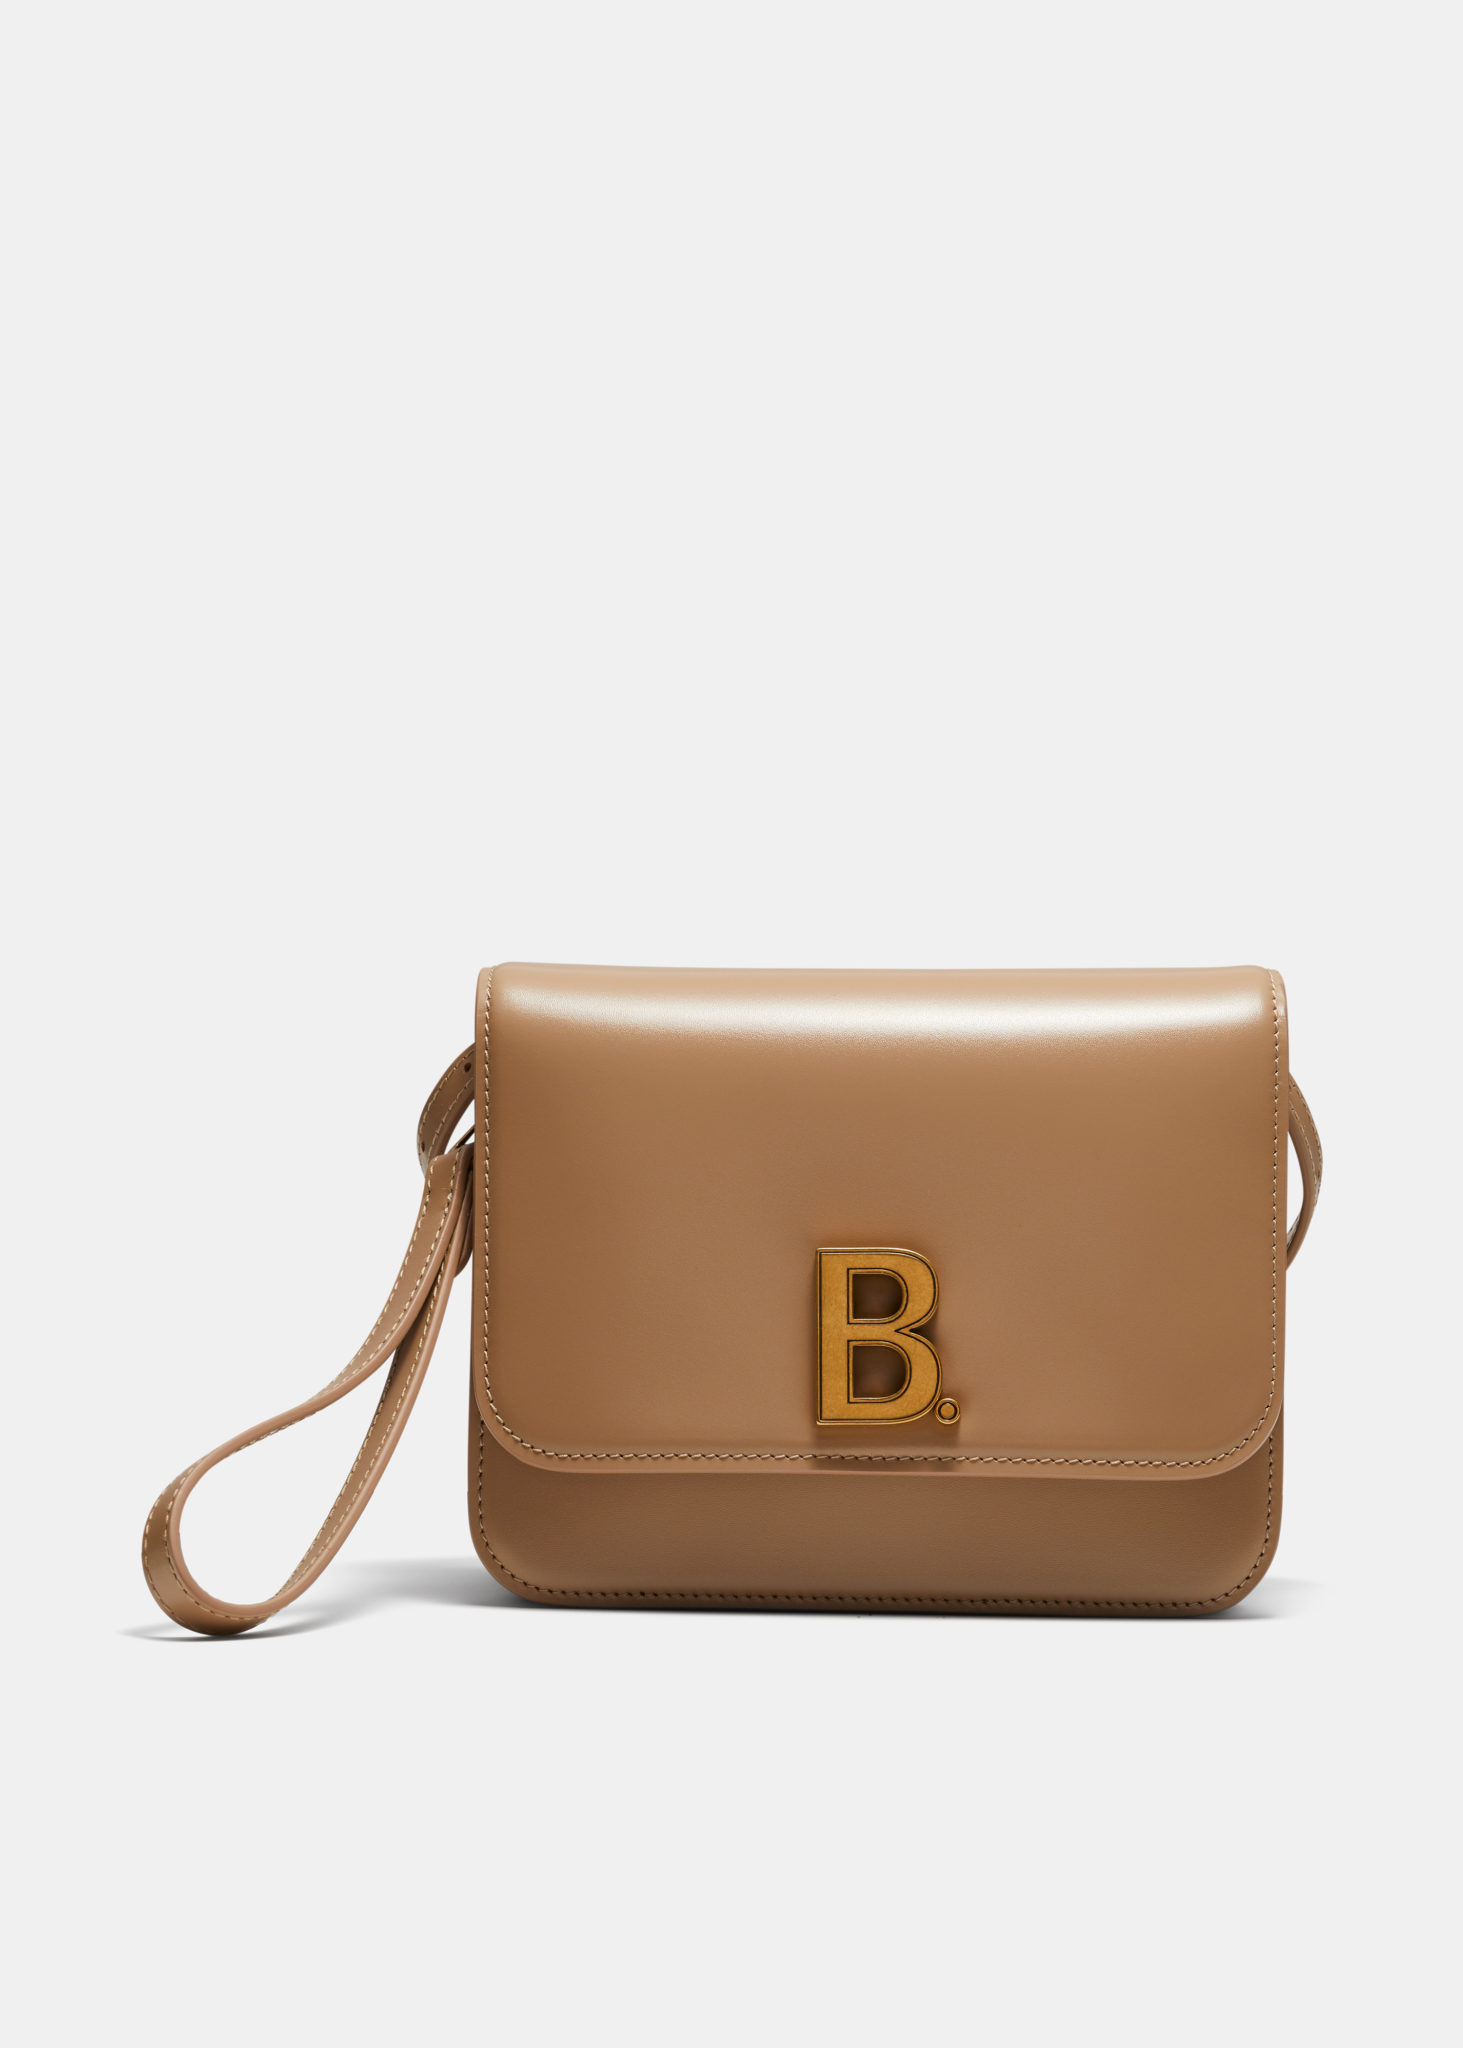 B. Small Crossbody Bag